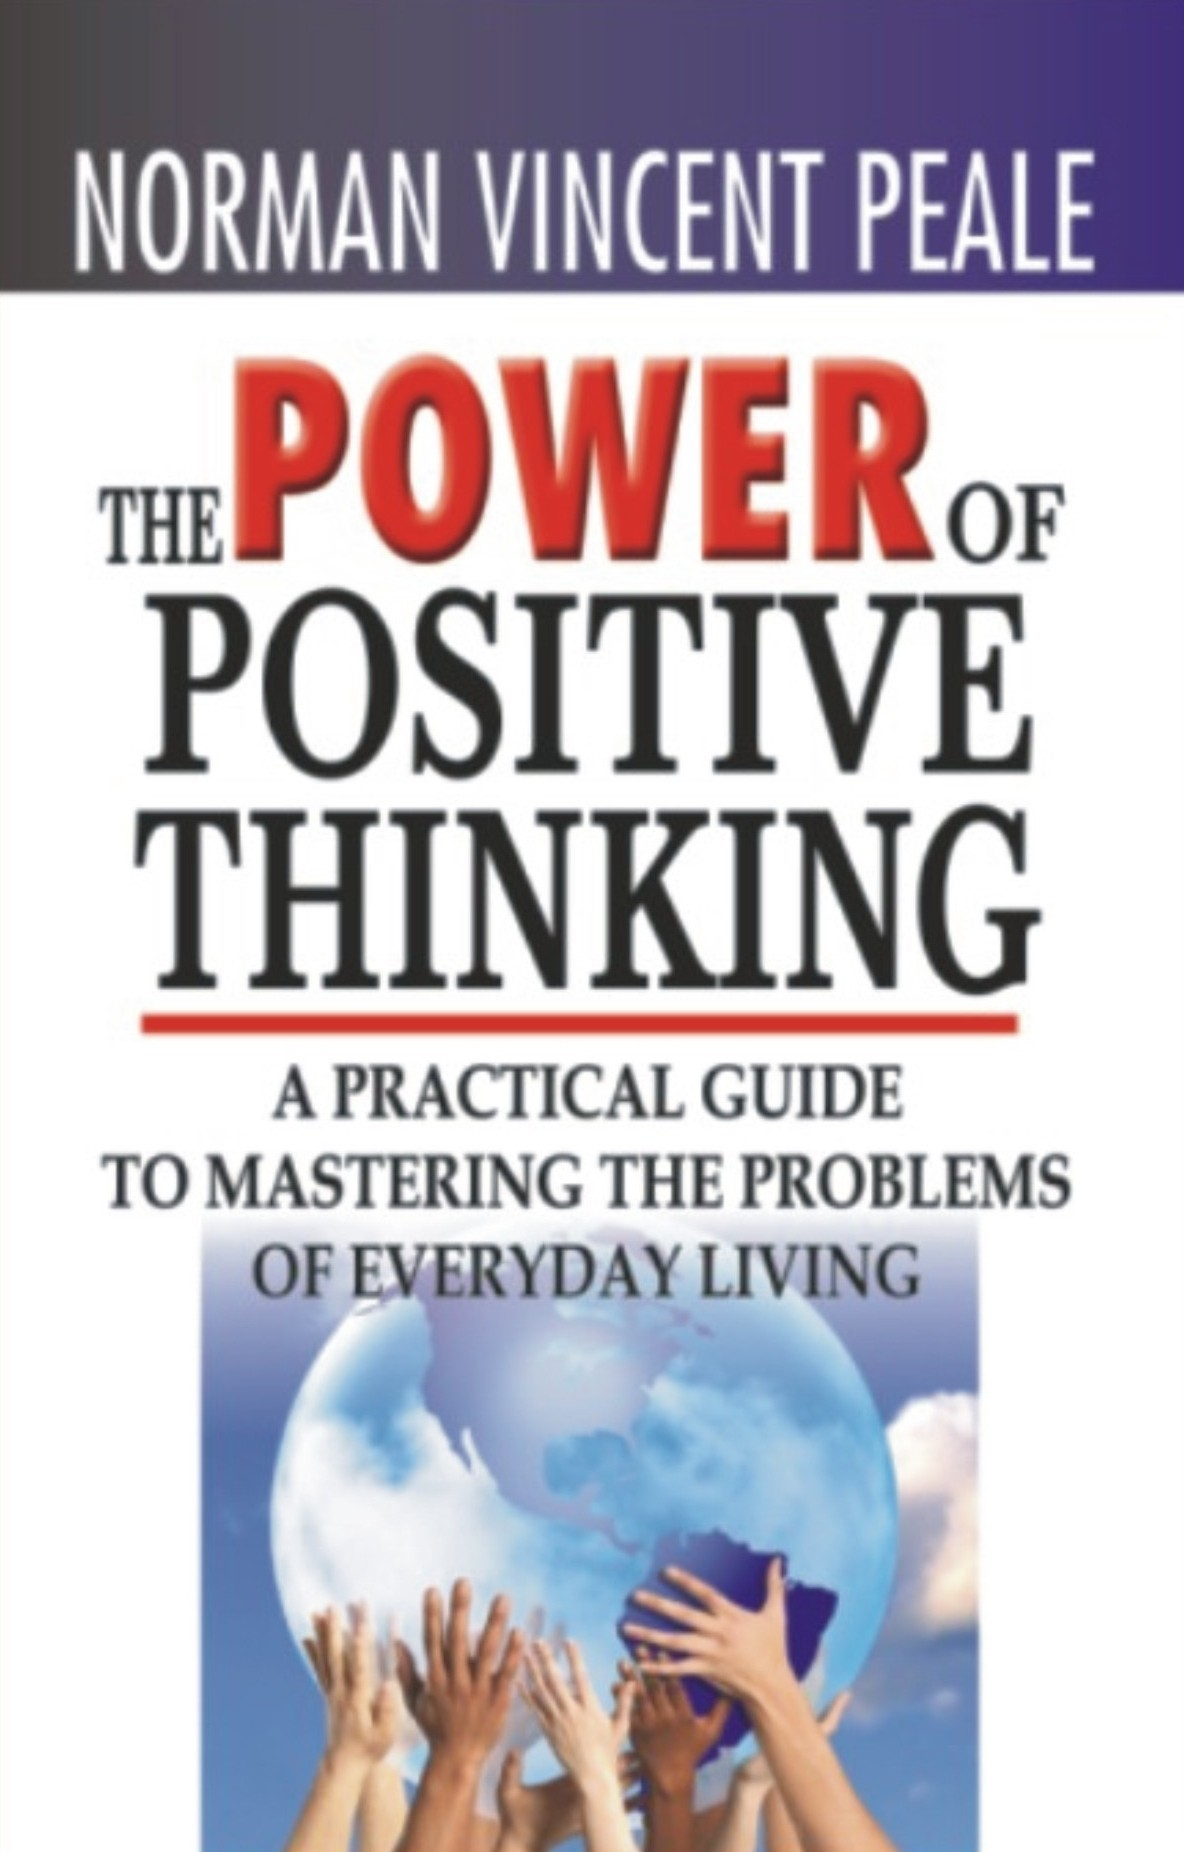 Essay on powers of positive thinking